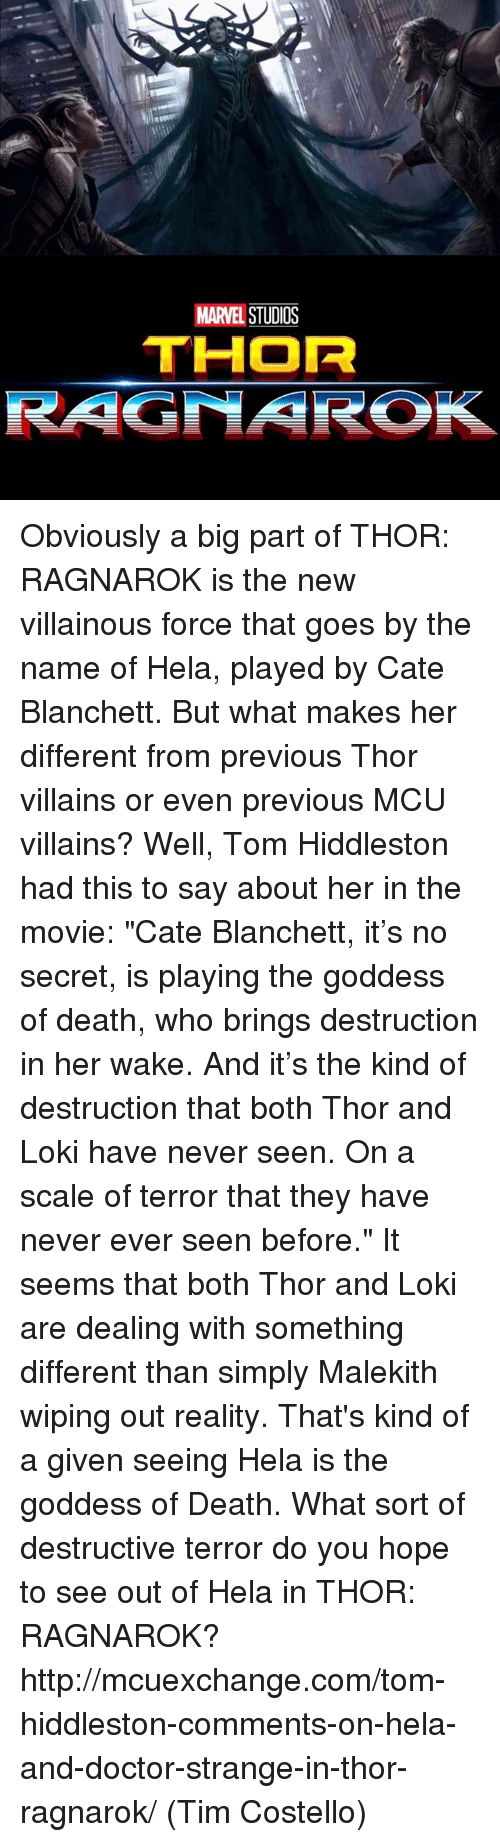 """Hiddlestoners: MARVEL  STUDOS  THOR  RAGNAROK Obviously a big part of THOR: RAGNAROK is the new villainous force that goes by the name of Hela, played by Cate Blanchett. But what makes her different from previous Thor villains or even previous MCU villains?  Well, Tom Hiddleston had this to say about her in the movie: """"Cate Blanchett, it's no secret, is playing the goddess of death, who brings destruction in her wake. And it's the kind of destruction that both Thor and Loki have never seen. On a scale of terror that they have never ever seen before.""""  It seems that both Thor and Loki are dealing with something different than simply Malekith wiping out reality. That's kind of a given seeing Hela is the goddess of Death. What sort of destructive terror do you hope to see out of Hela in THOR: RAGNAROK?  http://mcuexchange.com/tom-hiddleston-comments-on-hela-and-doctor-strange-in-thor-ragnarok/  (Tim Costello)"""